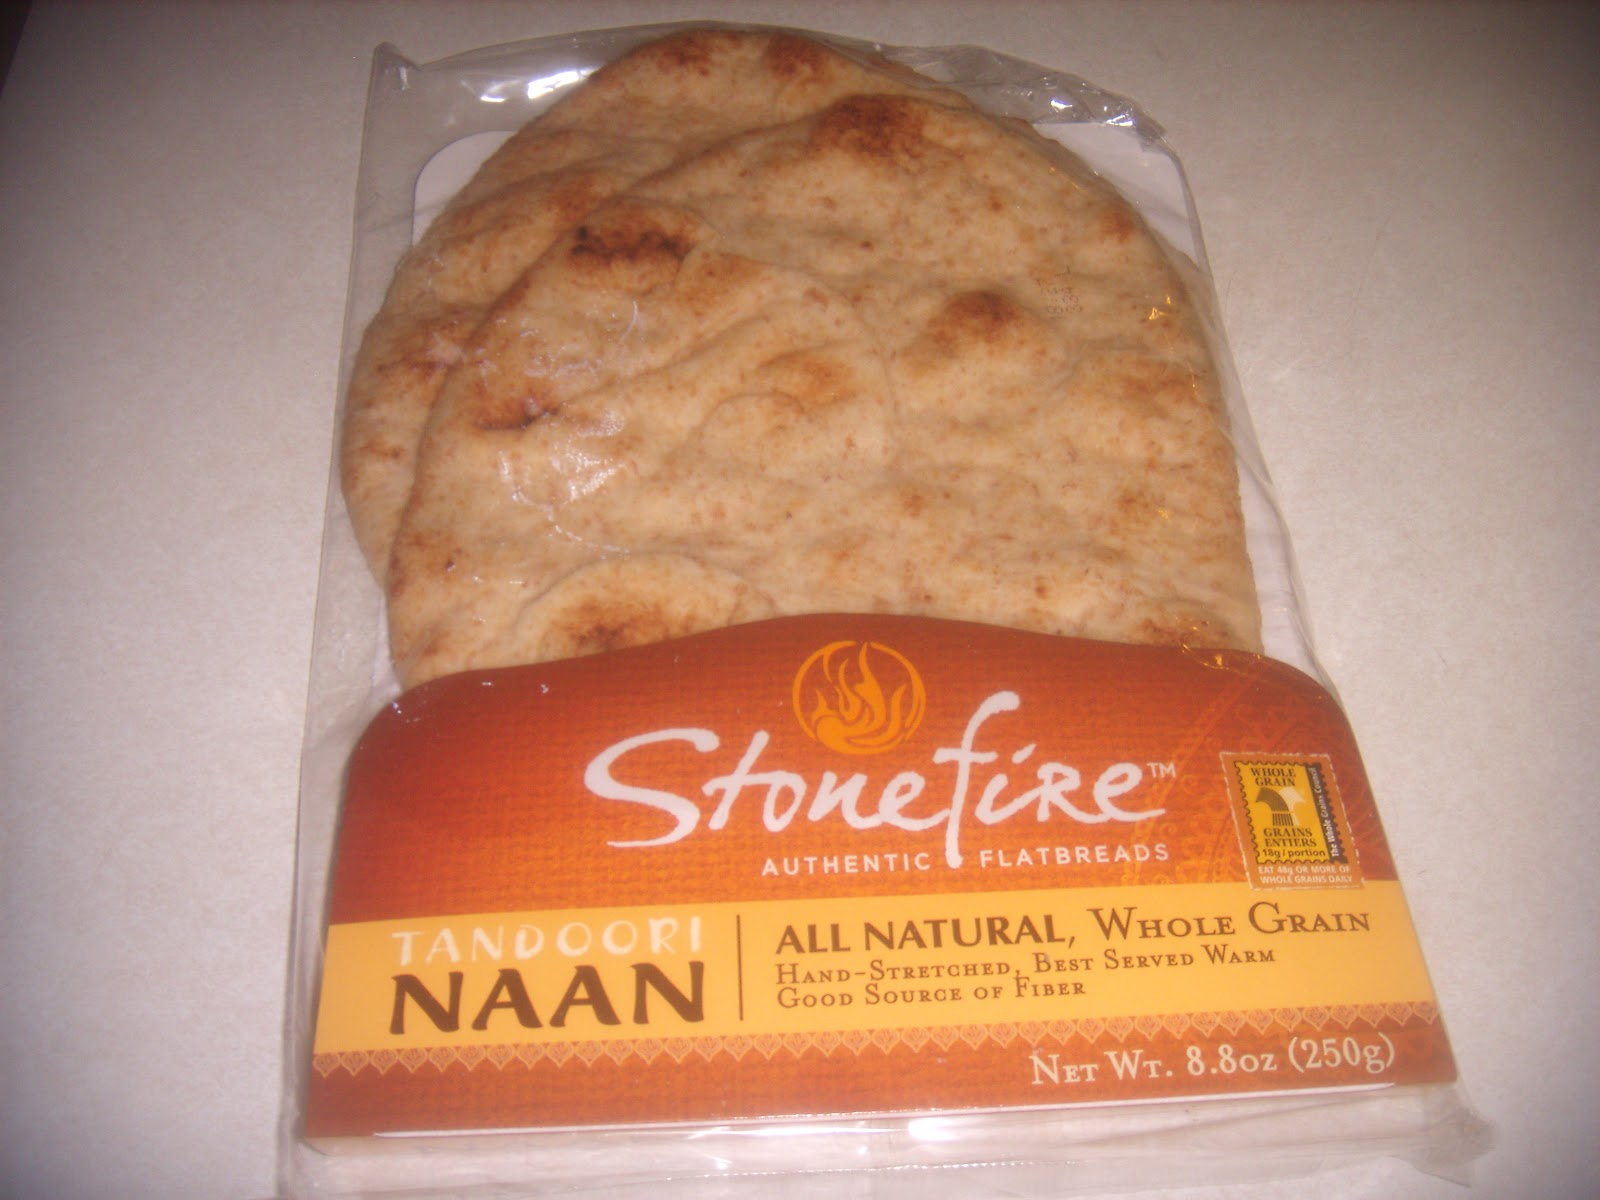 Naan. It had a great garlic flavor. I also loved that it had cilantro ...